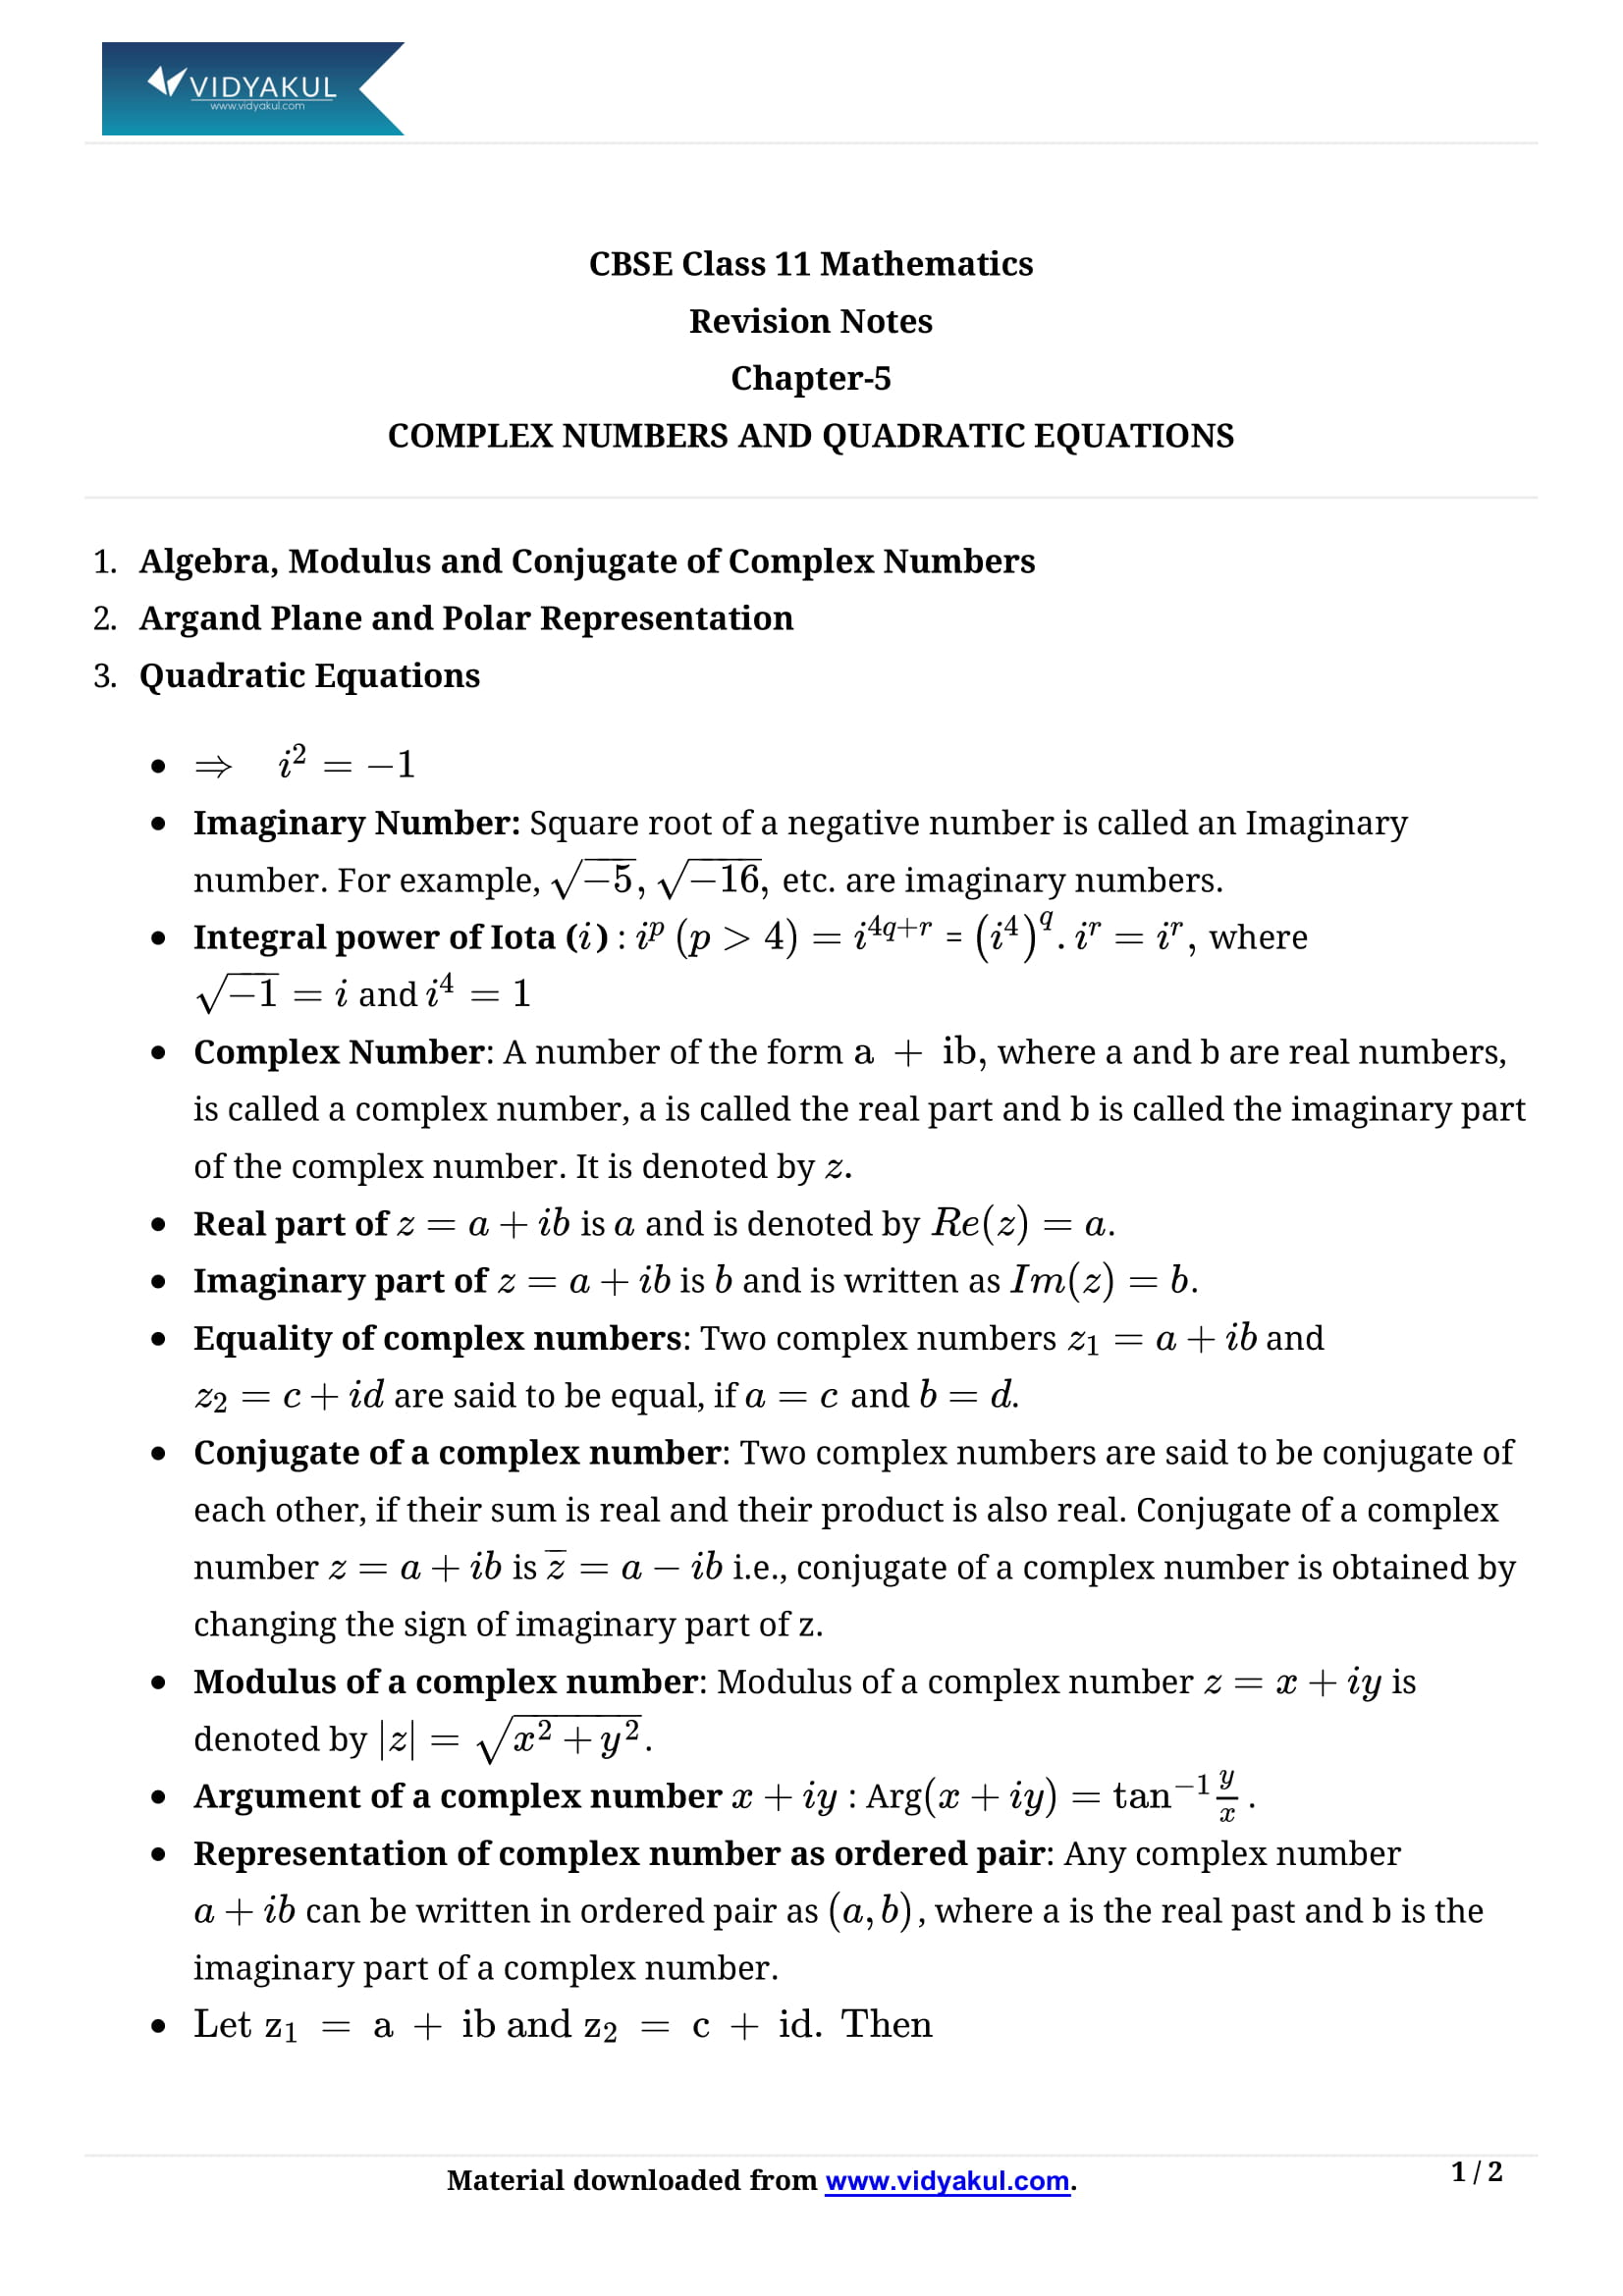 Complex Numbers and Quadratic Equations Class 11 Notes | Vidyakul